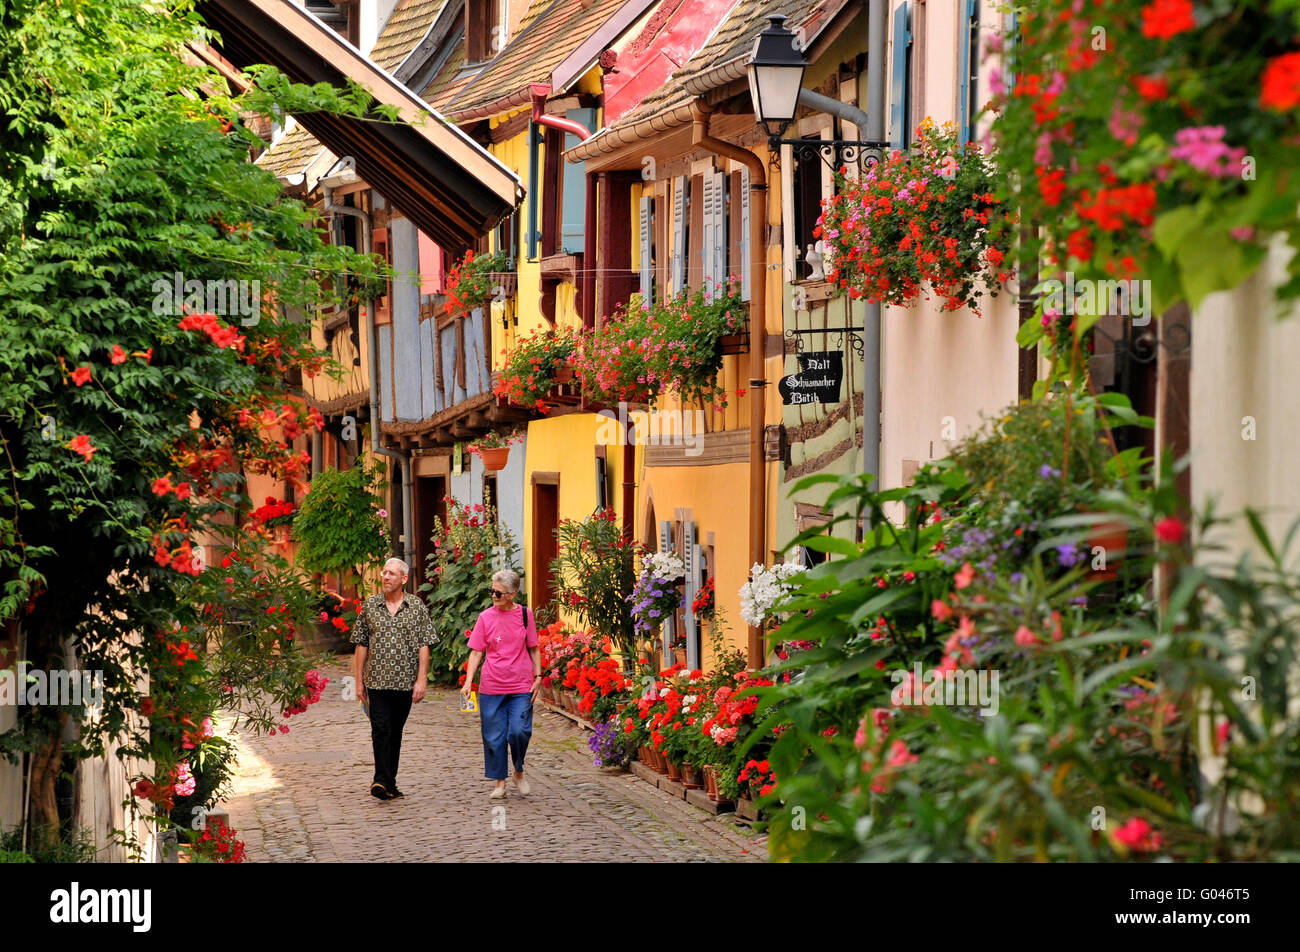 Half-timbered houses, old town, Rue du Rempart, Eguisheim, Alsace, France / half-timber house - Stock Image